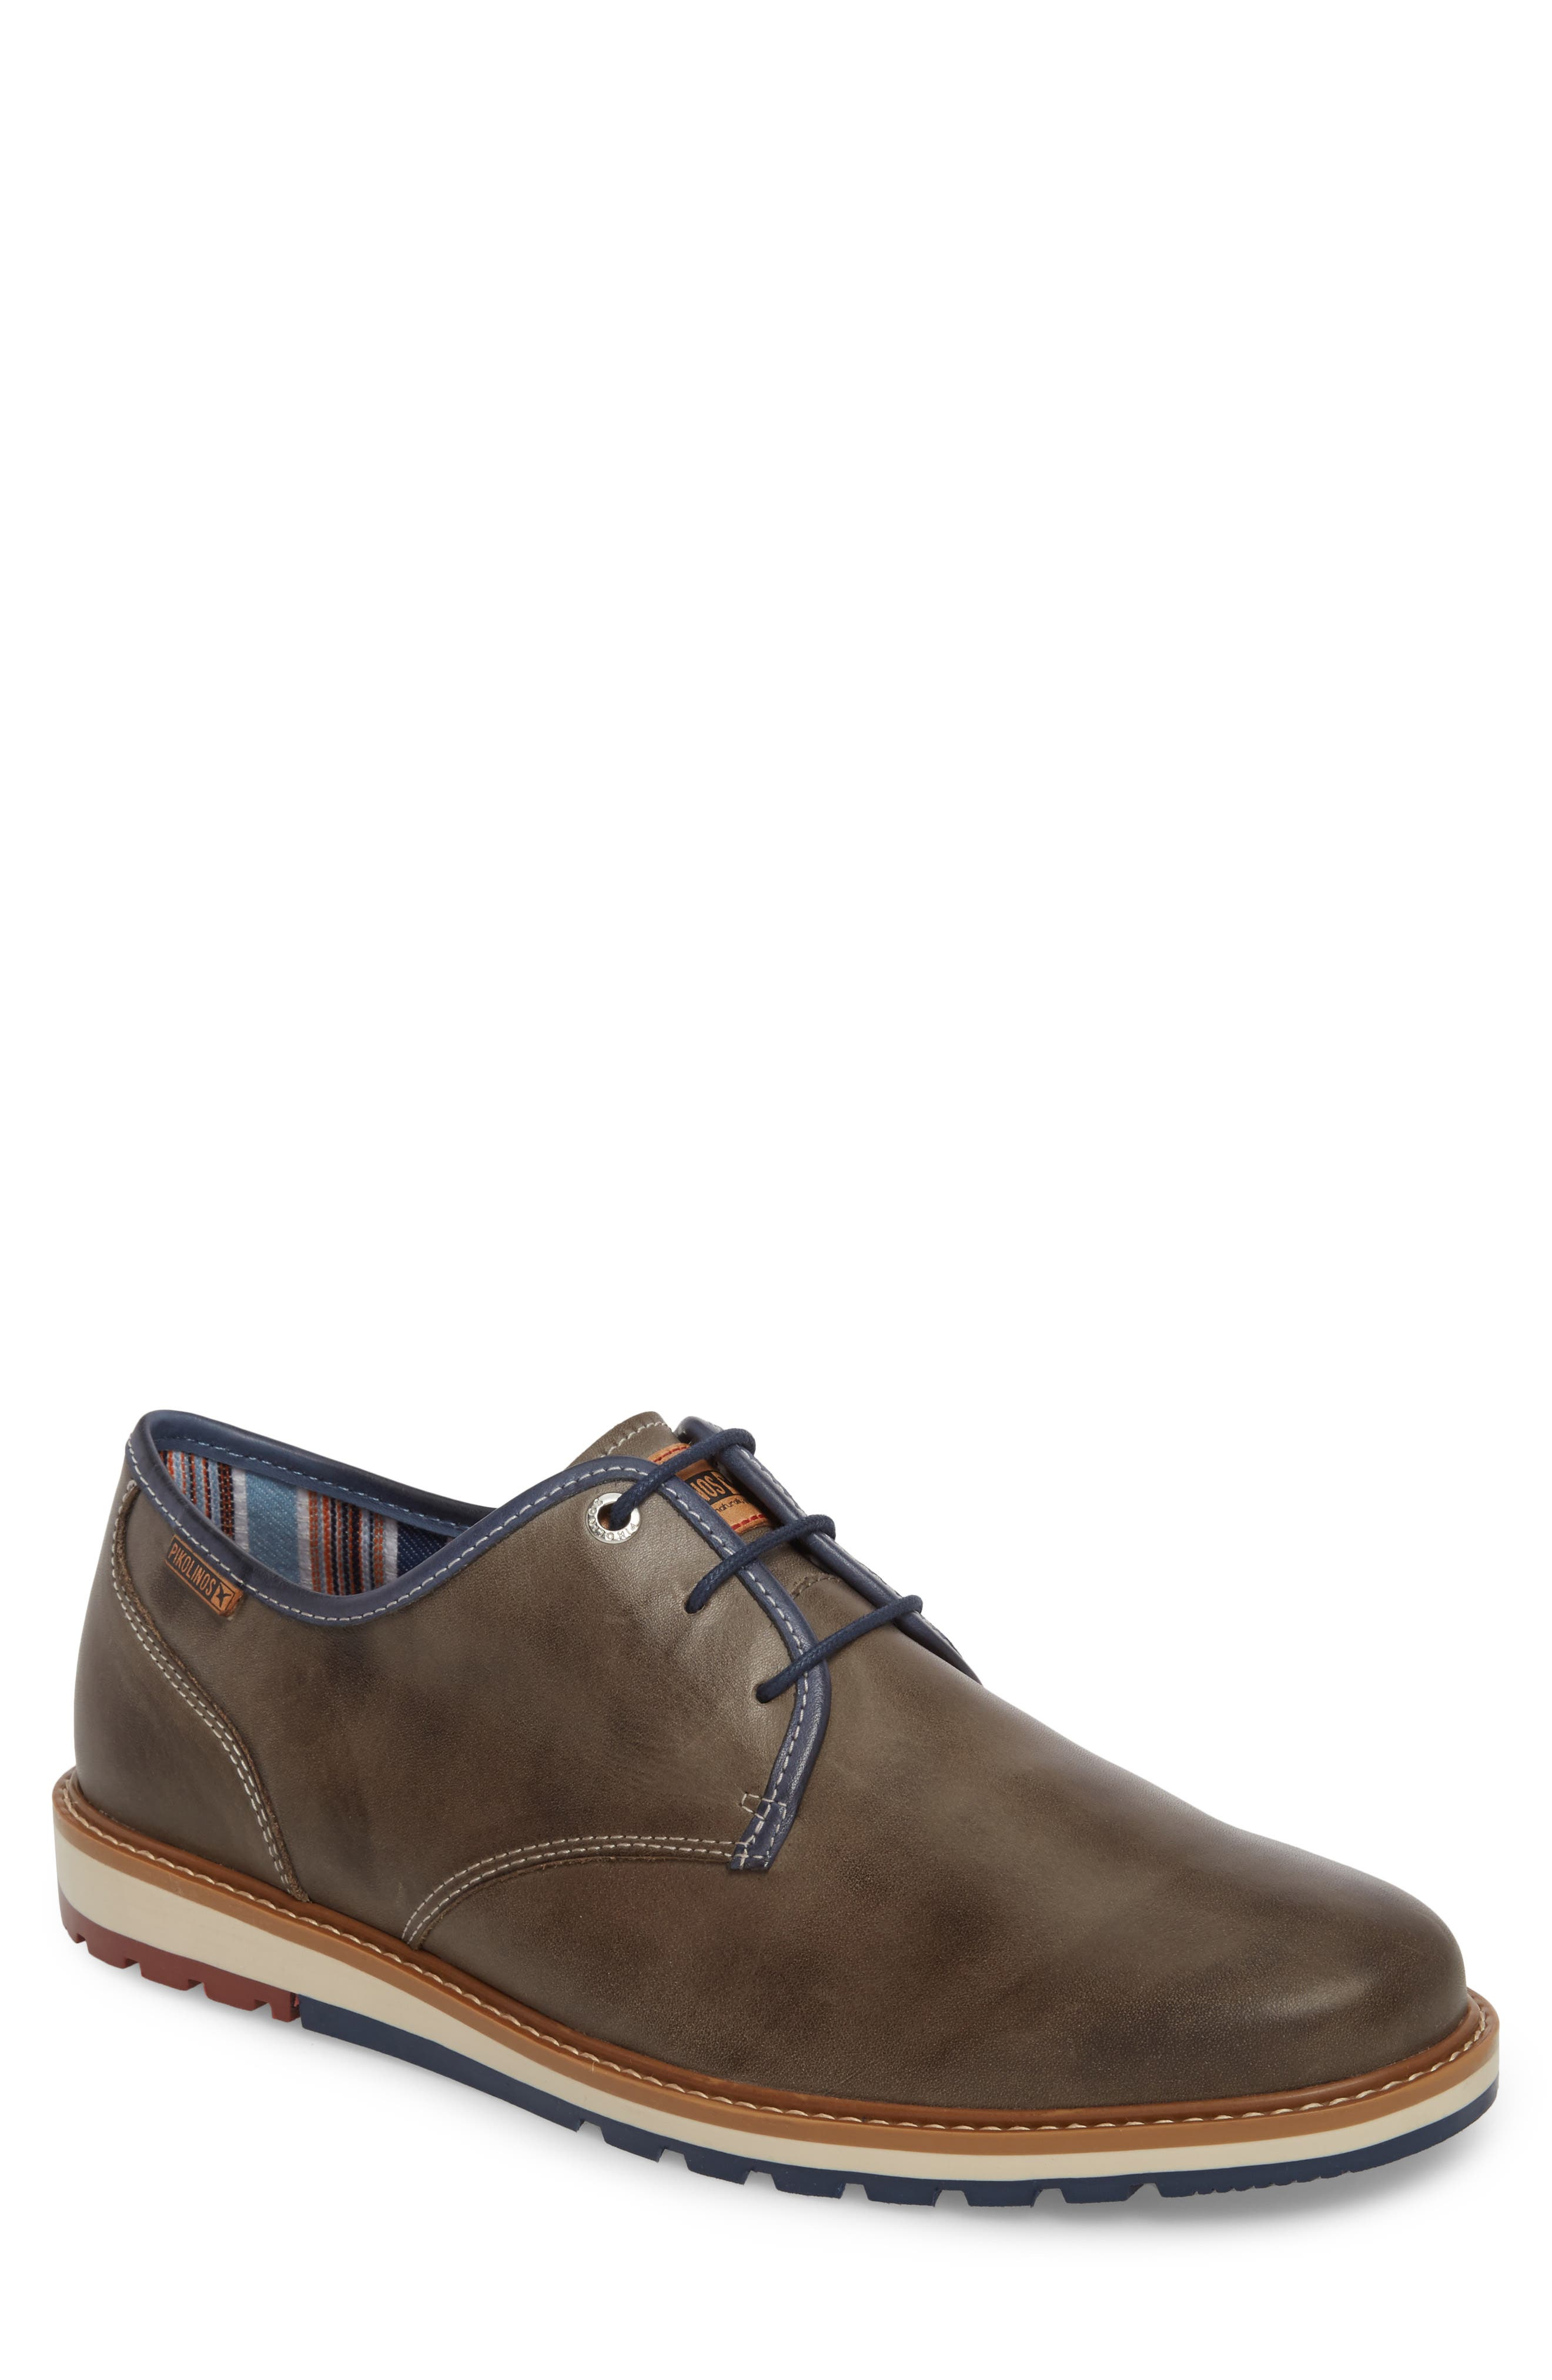 Main Image - PIKOLINOS Berna Plain Toe Oxford (Men)